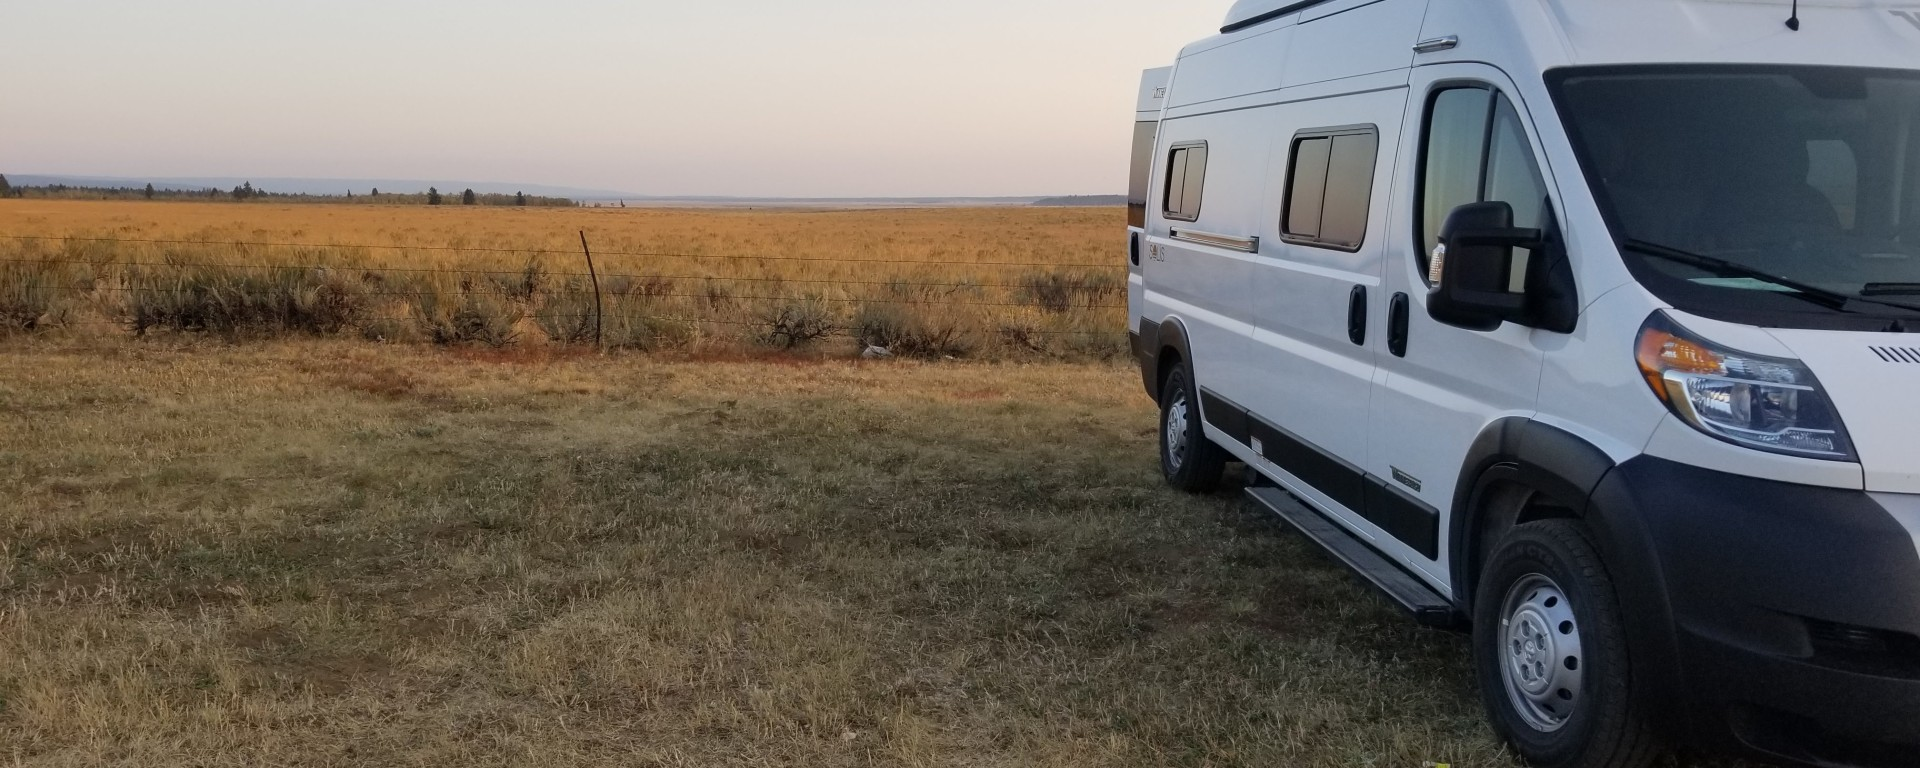 2021-winnebago-solis-first-time-campervan-trip